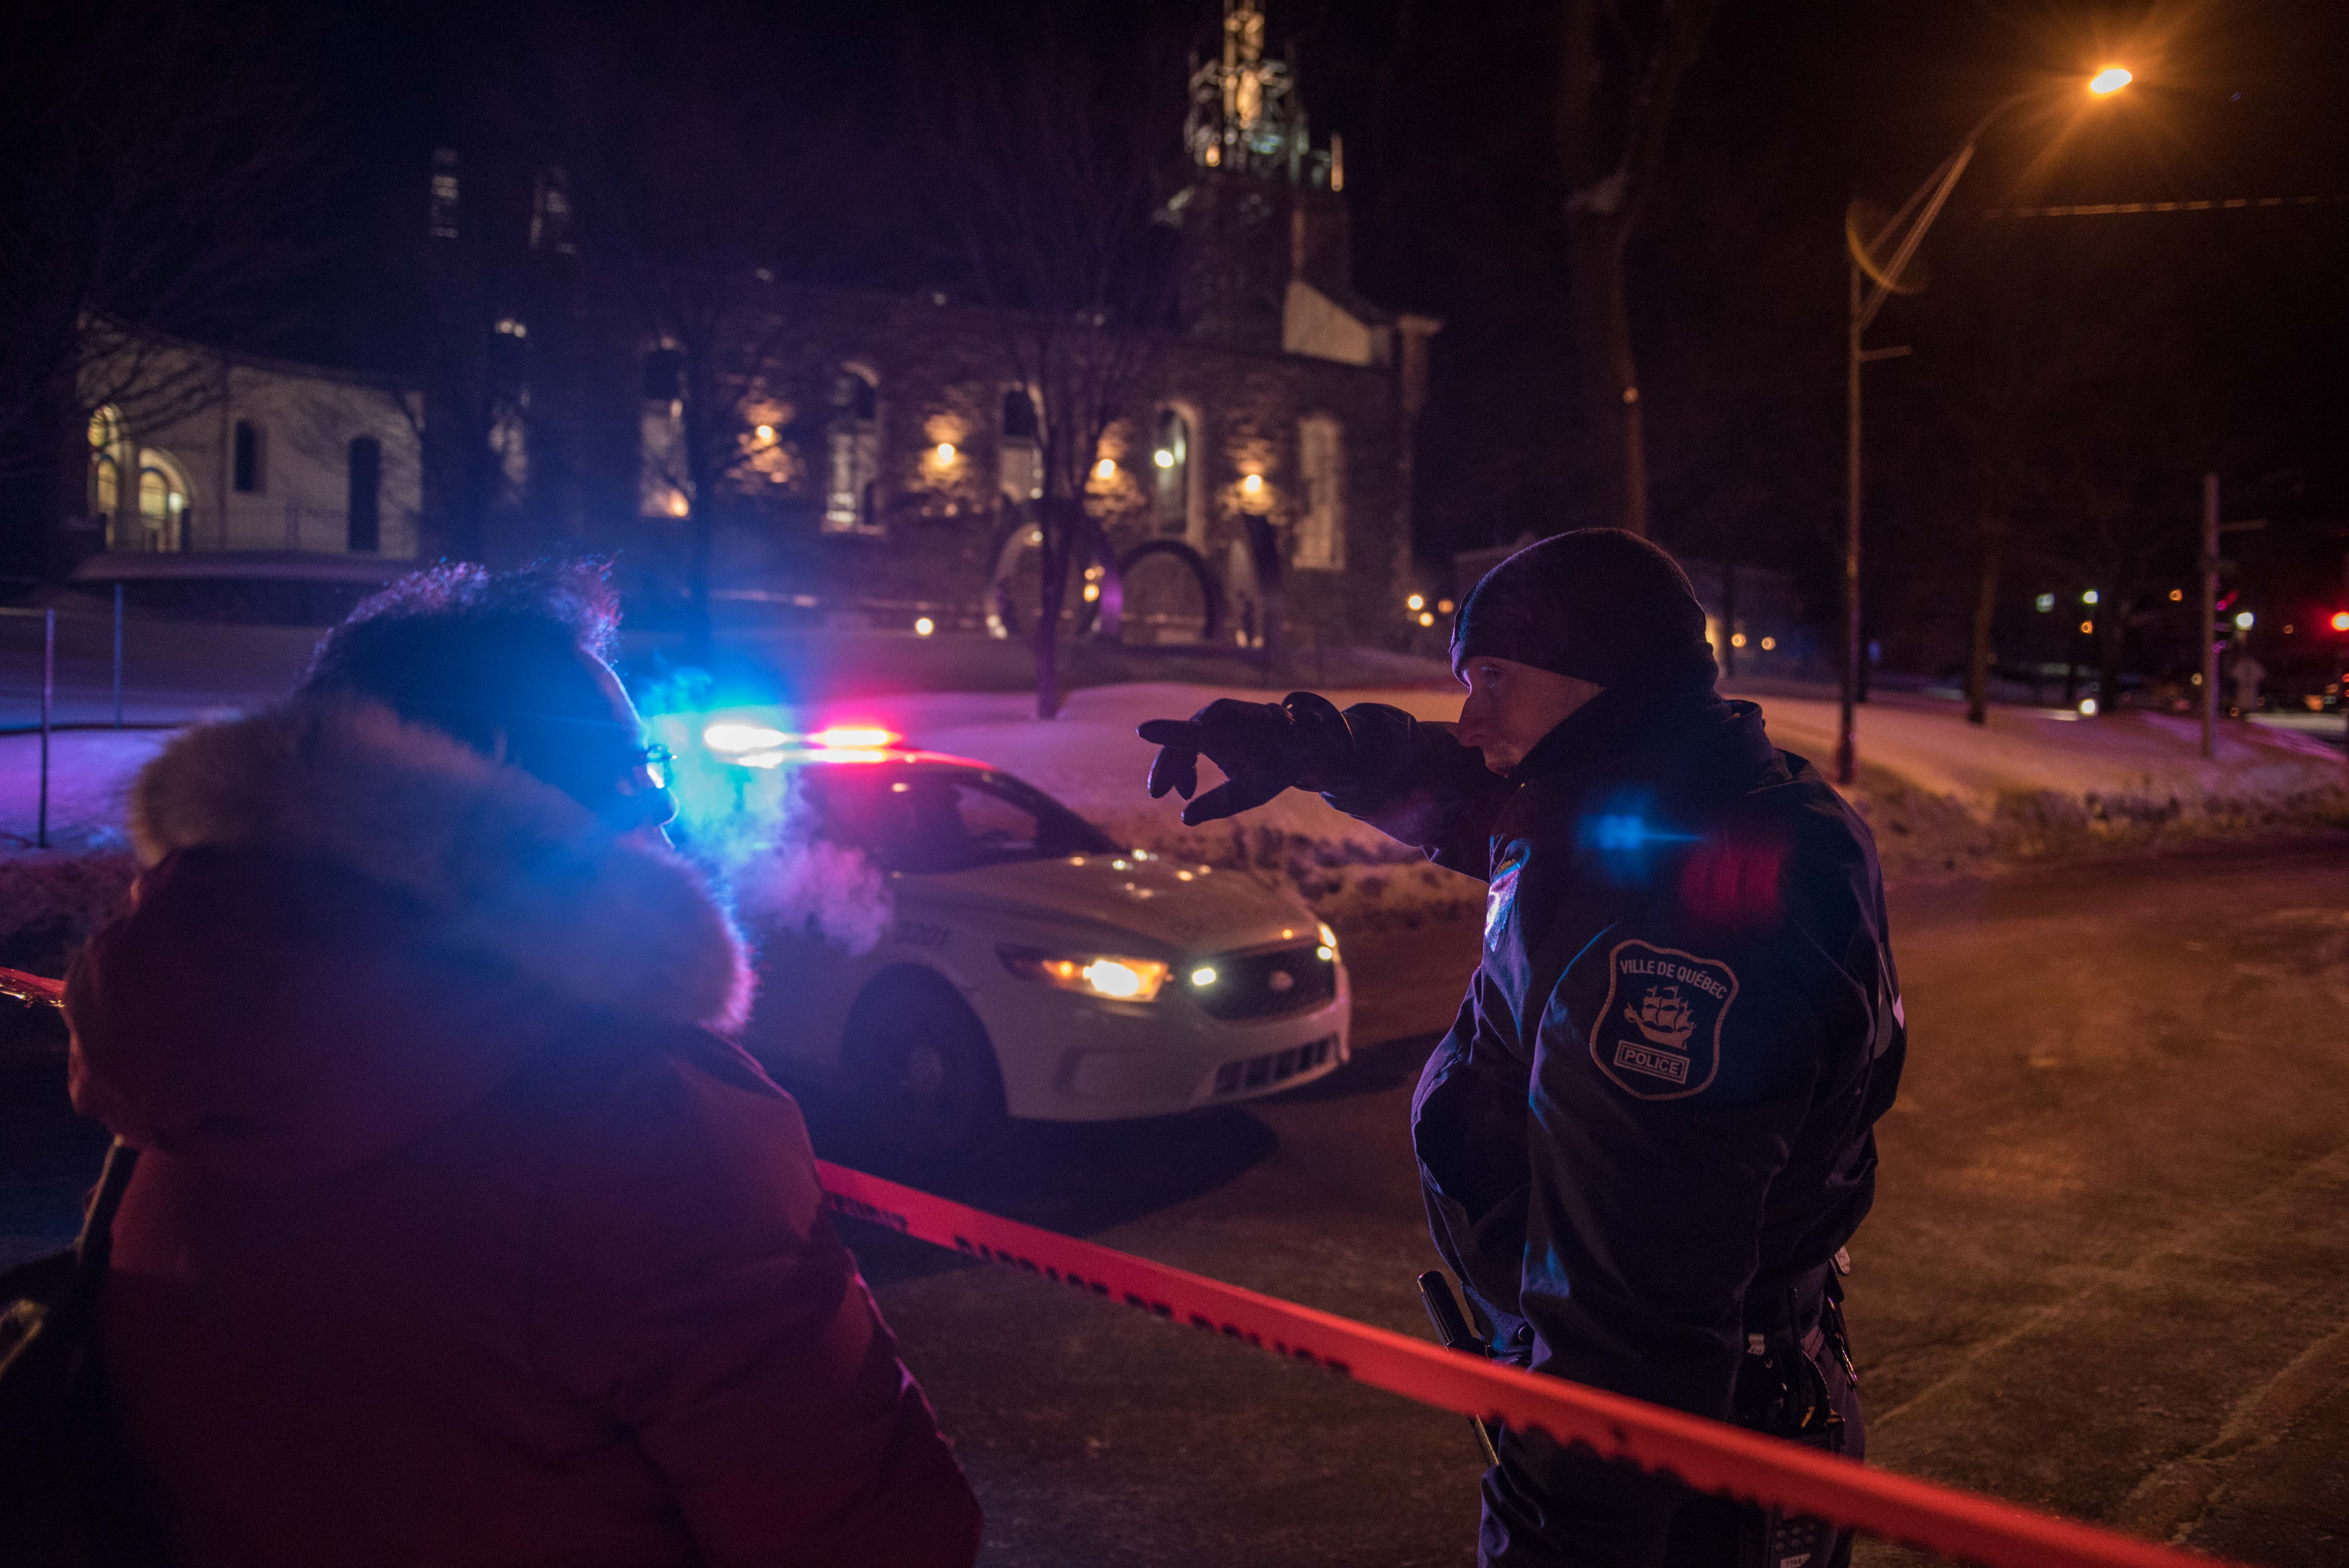 A Canadian police officer talks to a woman after a shooting in a mosque at the Québec City Islamic cultural center on Sainte-Foy Street in Quebec city on January 29, 2017. (Getty)